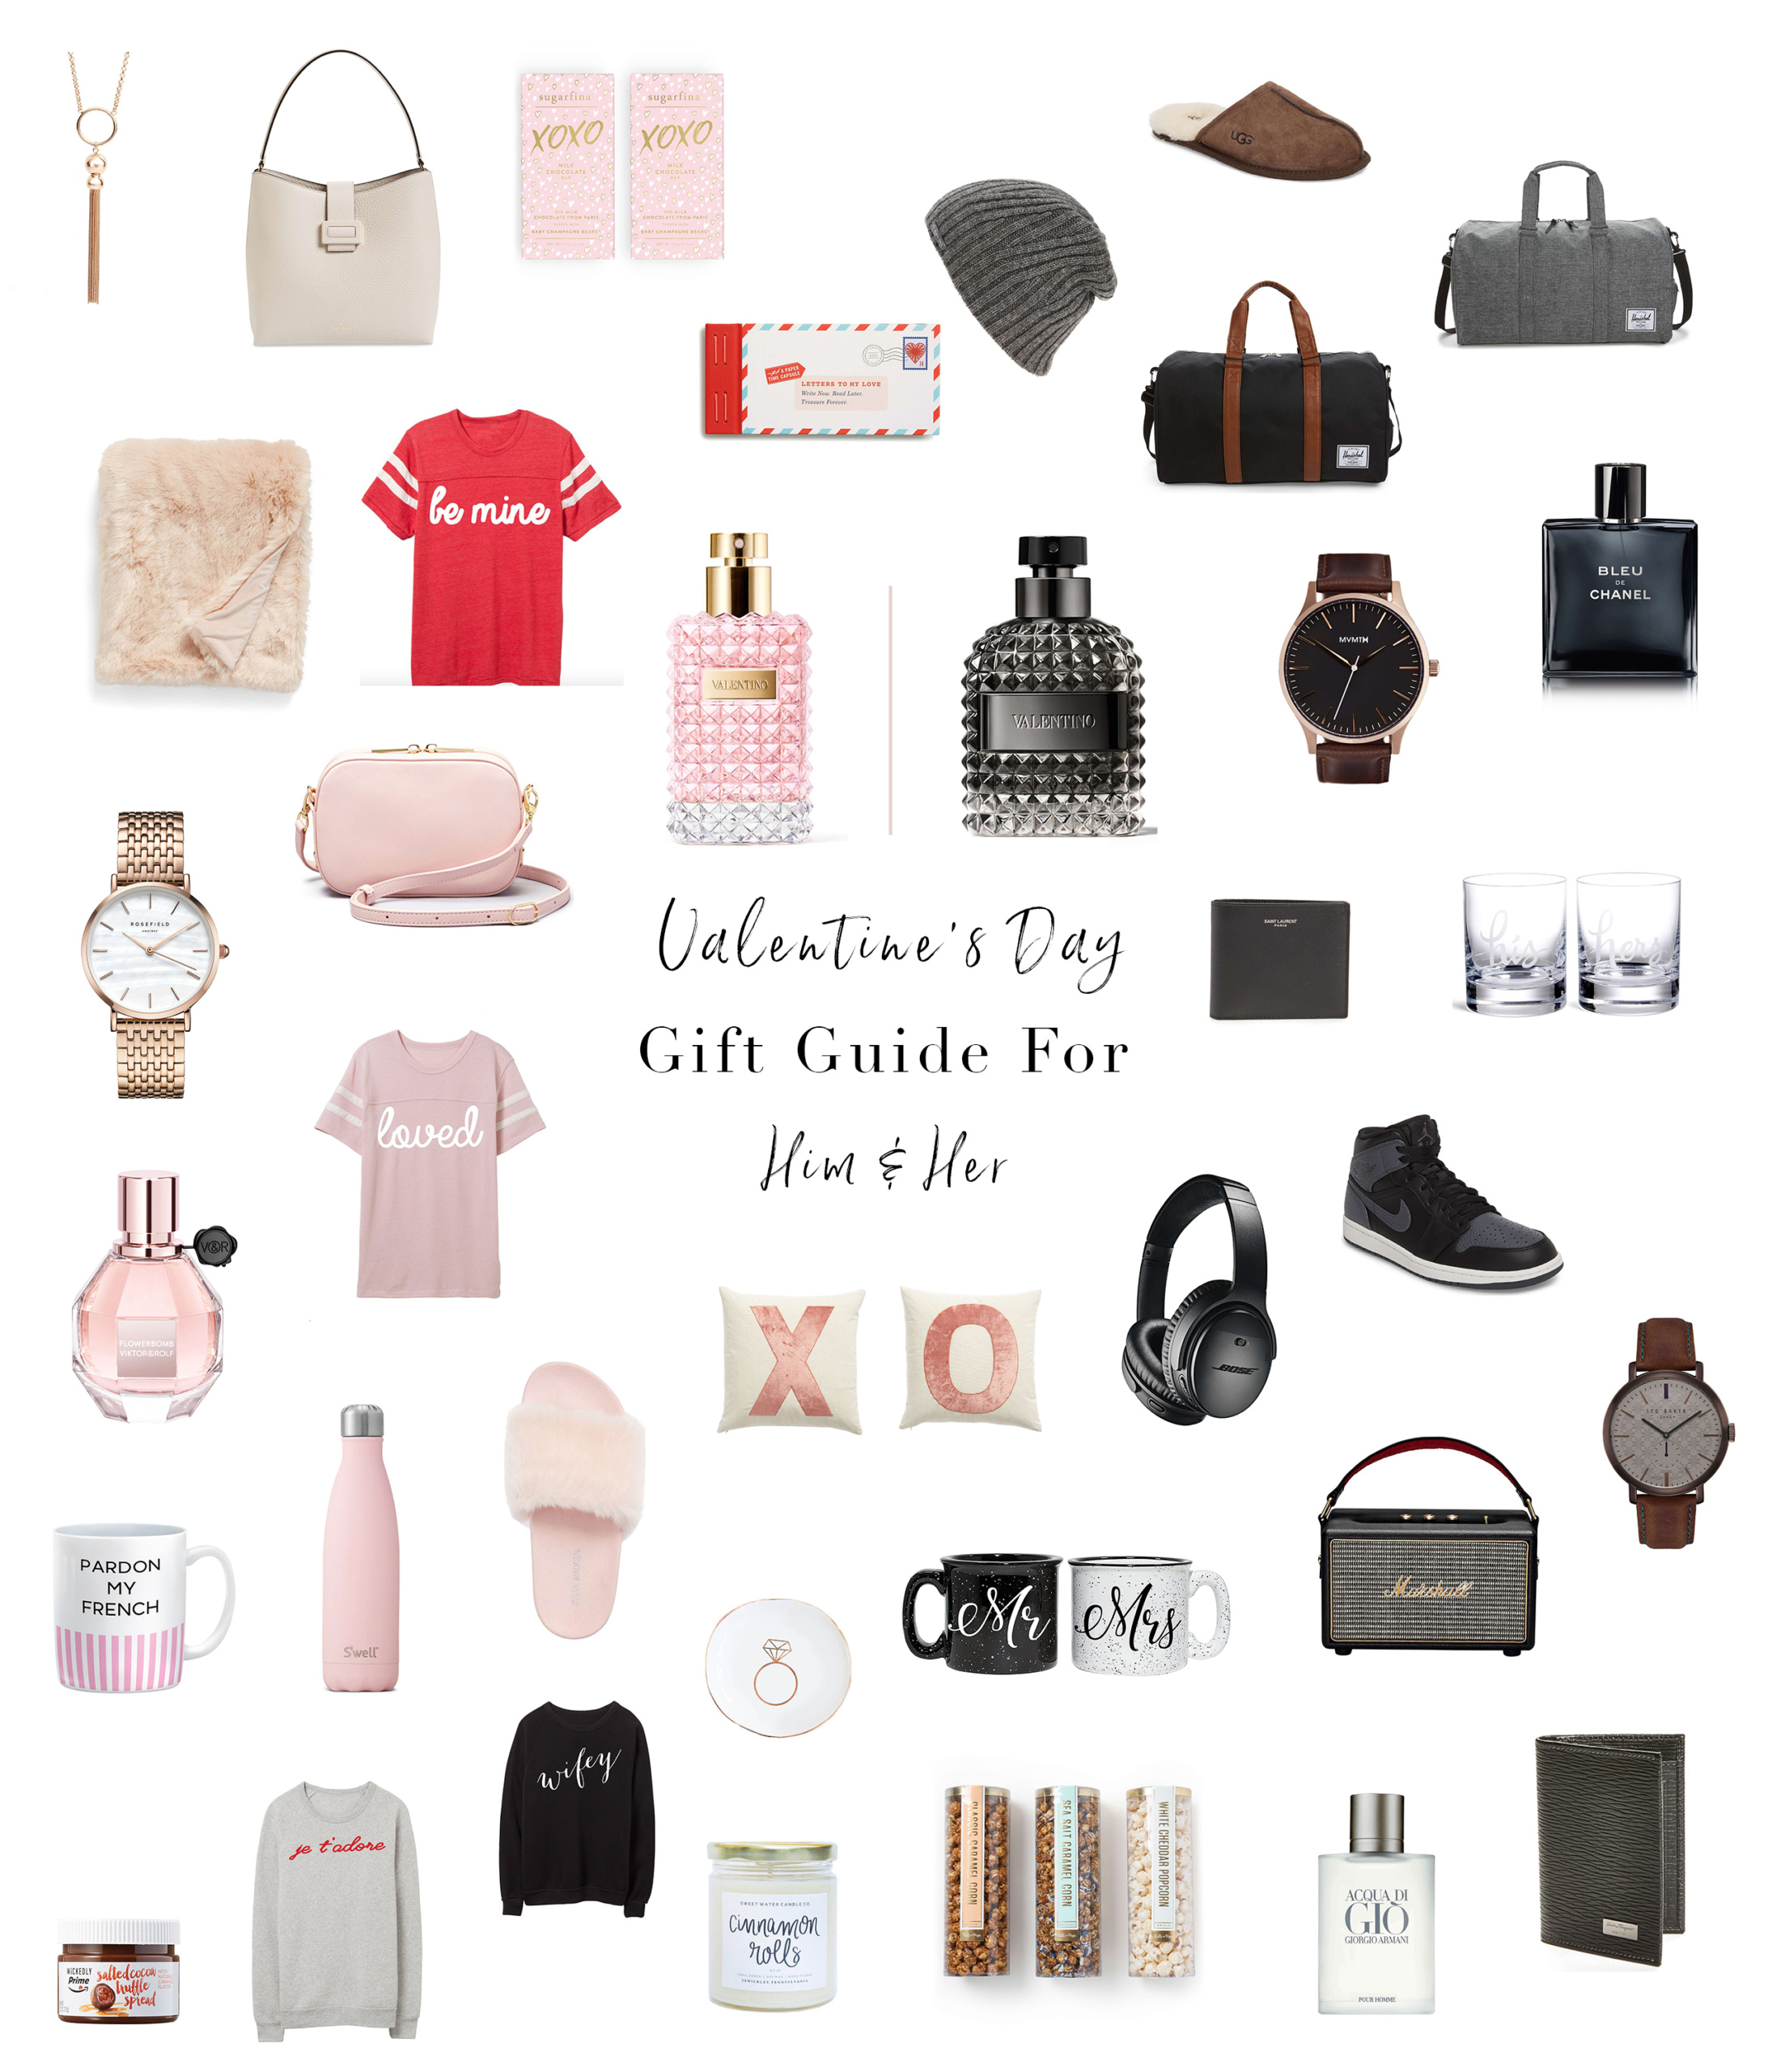 His & Hers Valentine's Day Gift Guide | Blondie in the City by Hayley Larue